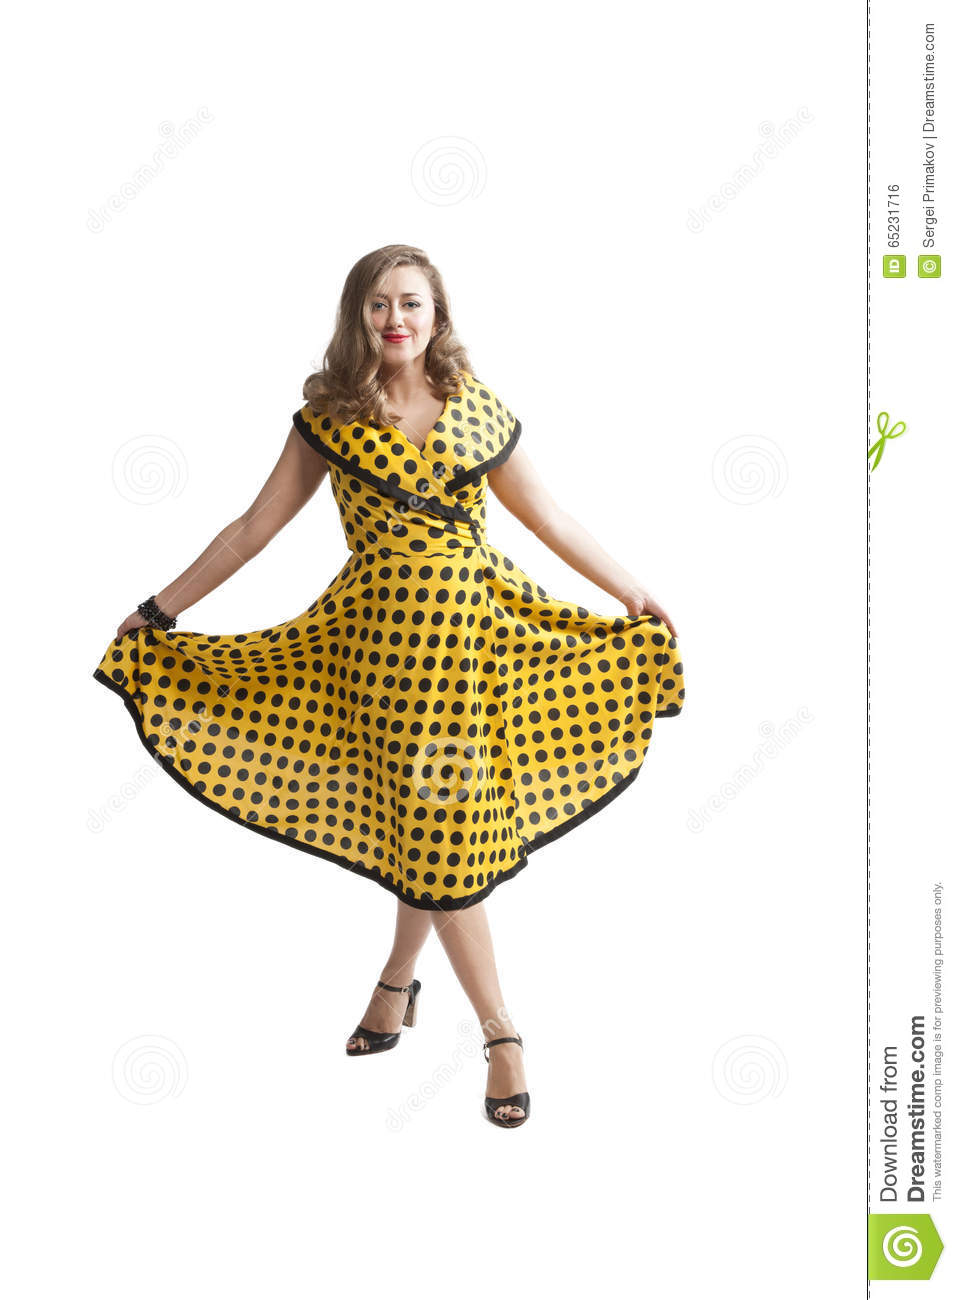 Young Woman In Yellow Pin-up Dress Stock Photo - Image of vintage ...